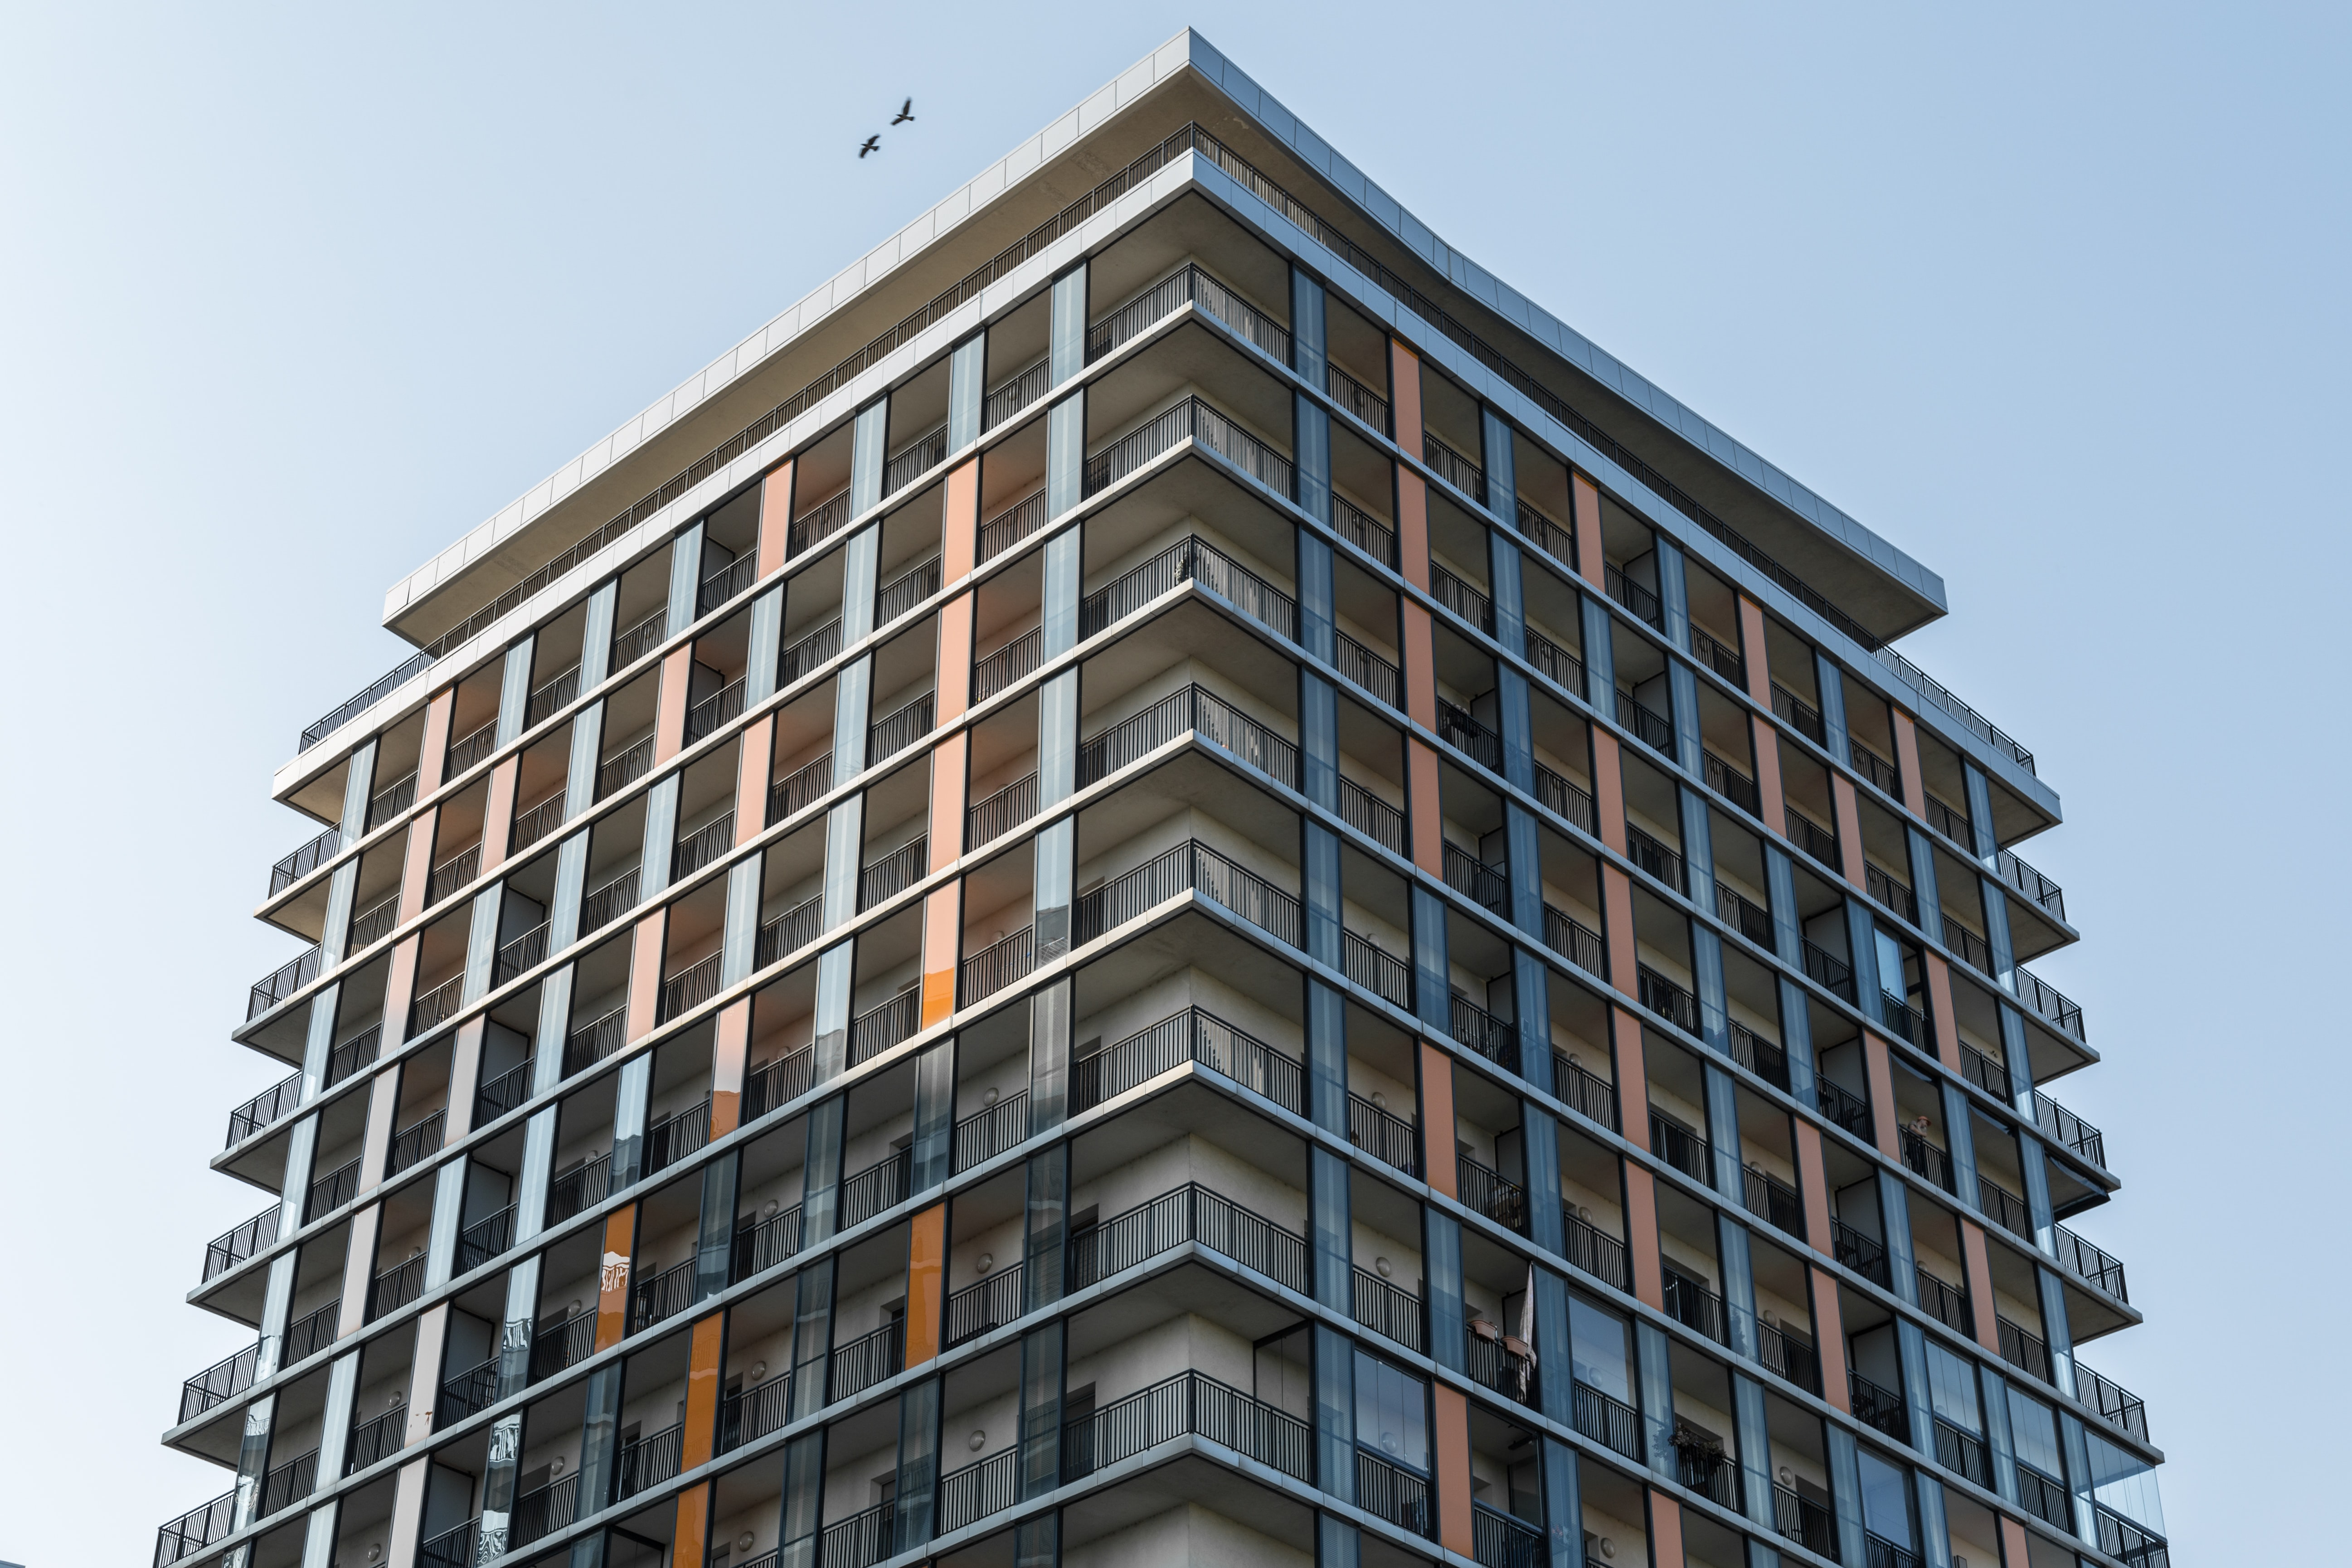 low angle photograph of beige and orange concrete building